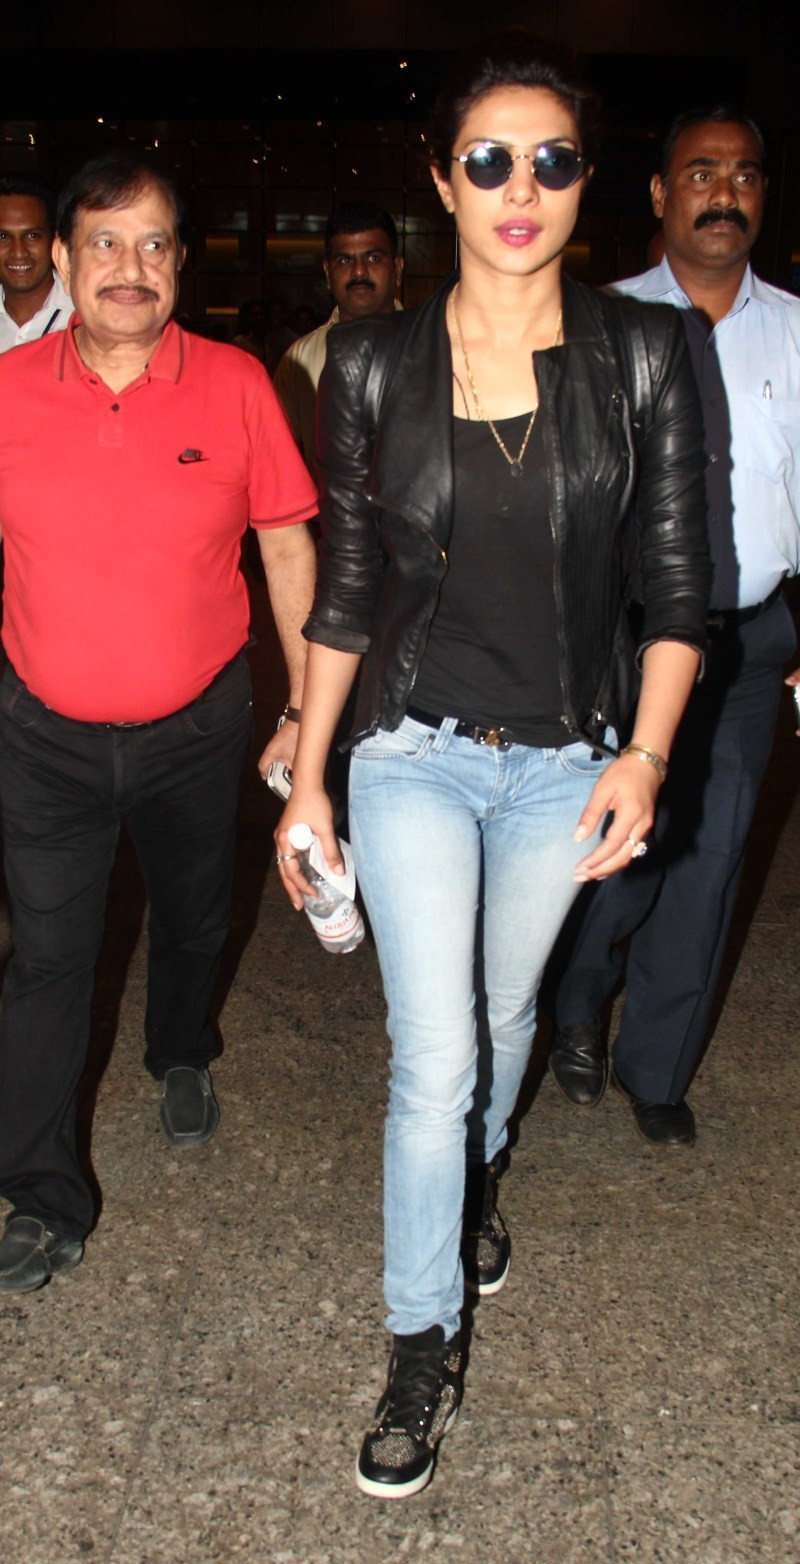 Priyanka Chopra spotted at International Airport,Priyanka Chopra at International Airport,Priyanka Chopra,actress Priyanka Chopra,Priyanka Chopra pics,Priyanka Chopra images,Priyanka Chopra stills,Priyanka Chopra photos,Priyanka Chopra latest pics,Priyank